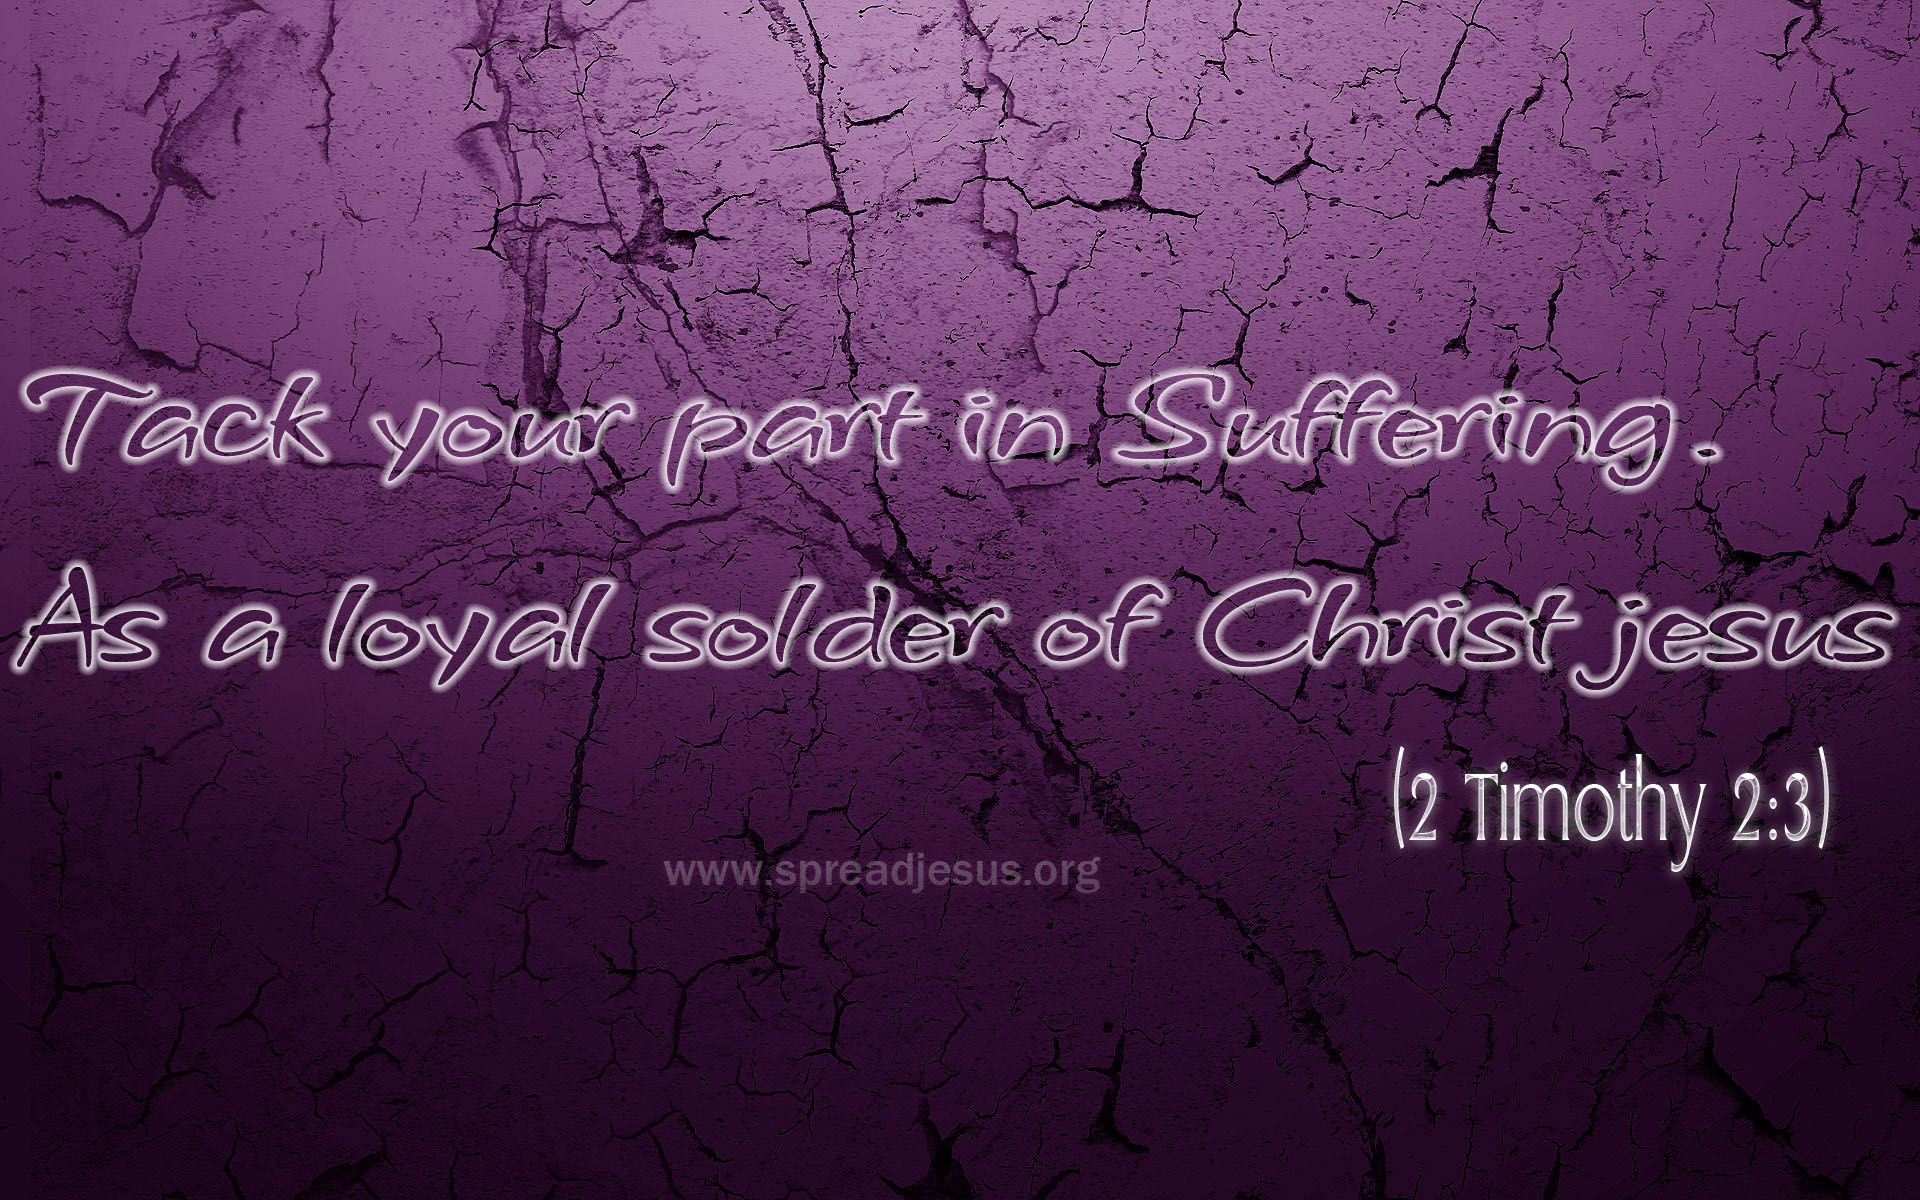 Bible Quotes-2 TIMOTHY 2:3>Tack your part in Suffering. As a loyal solder of Christ jesus (2 TIMOTHY 2:3)